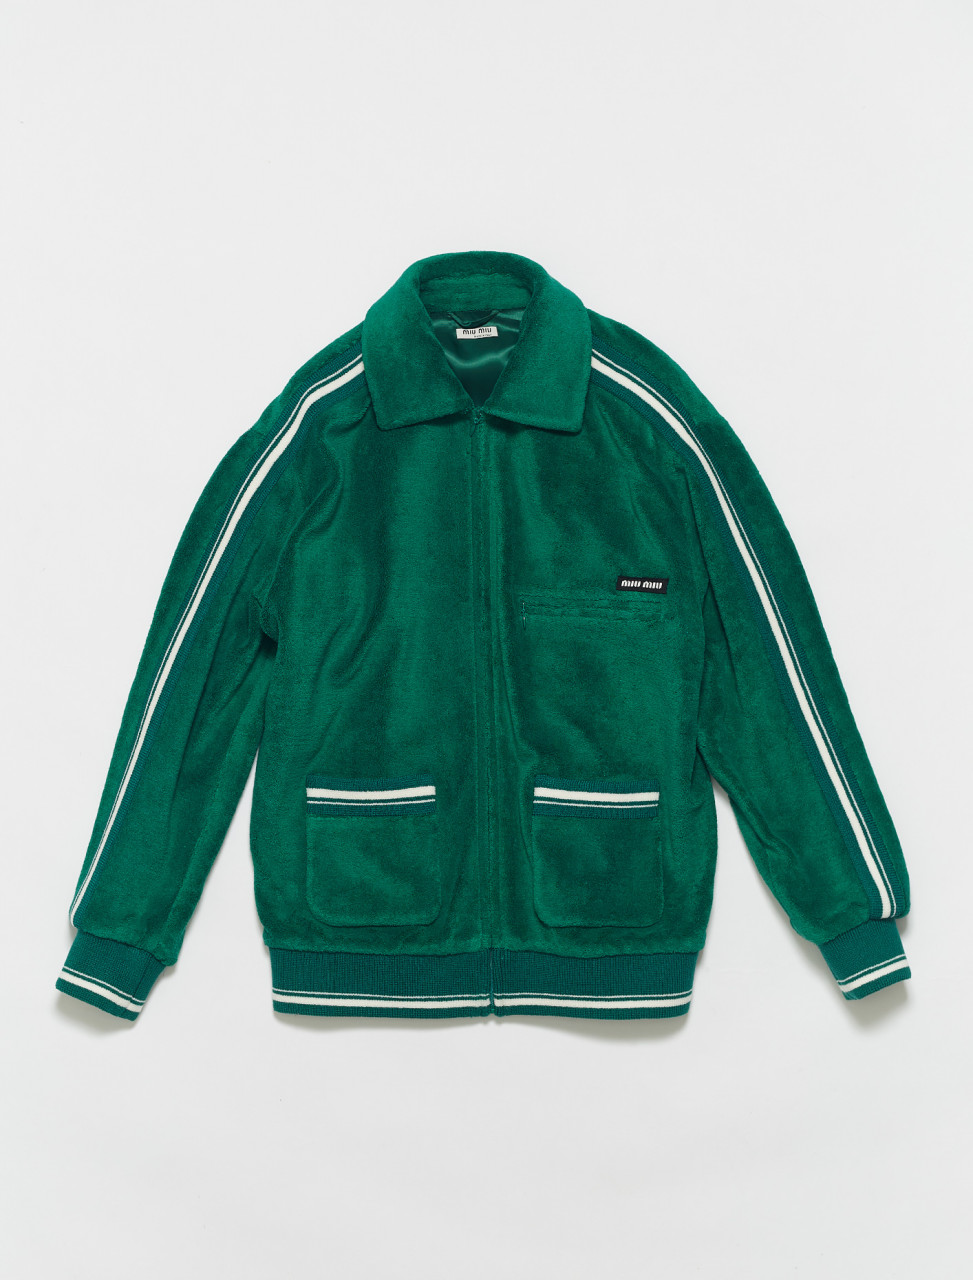 ML694-F077U MIU MIU TERRY JERSEY BLOUSON JACKET IN EMERALD